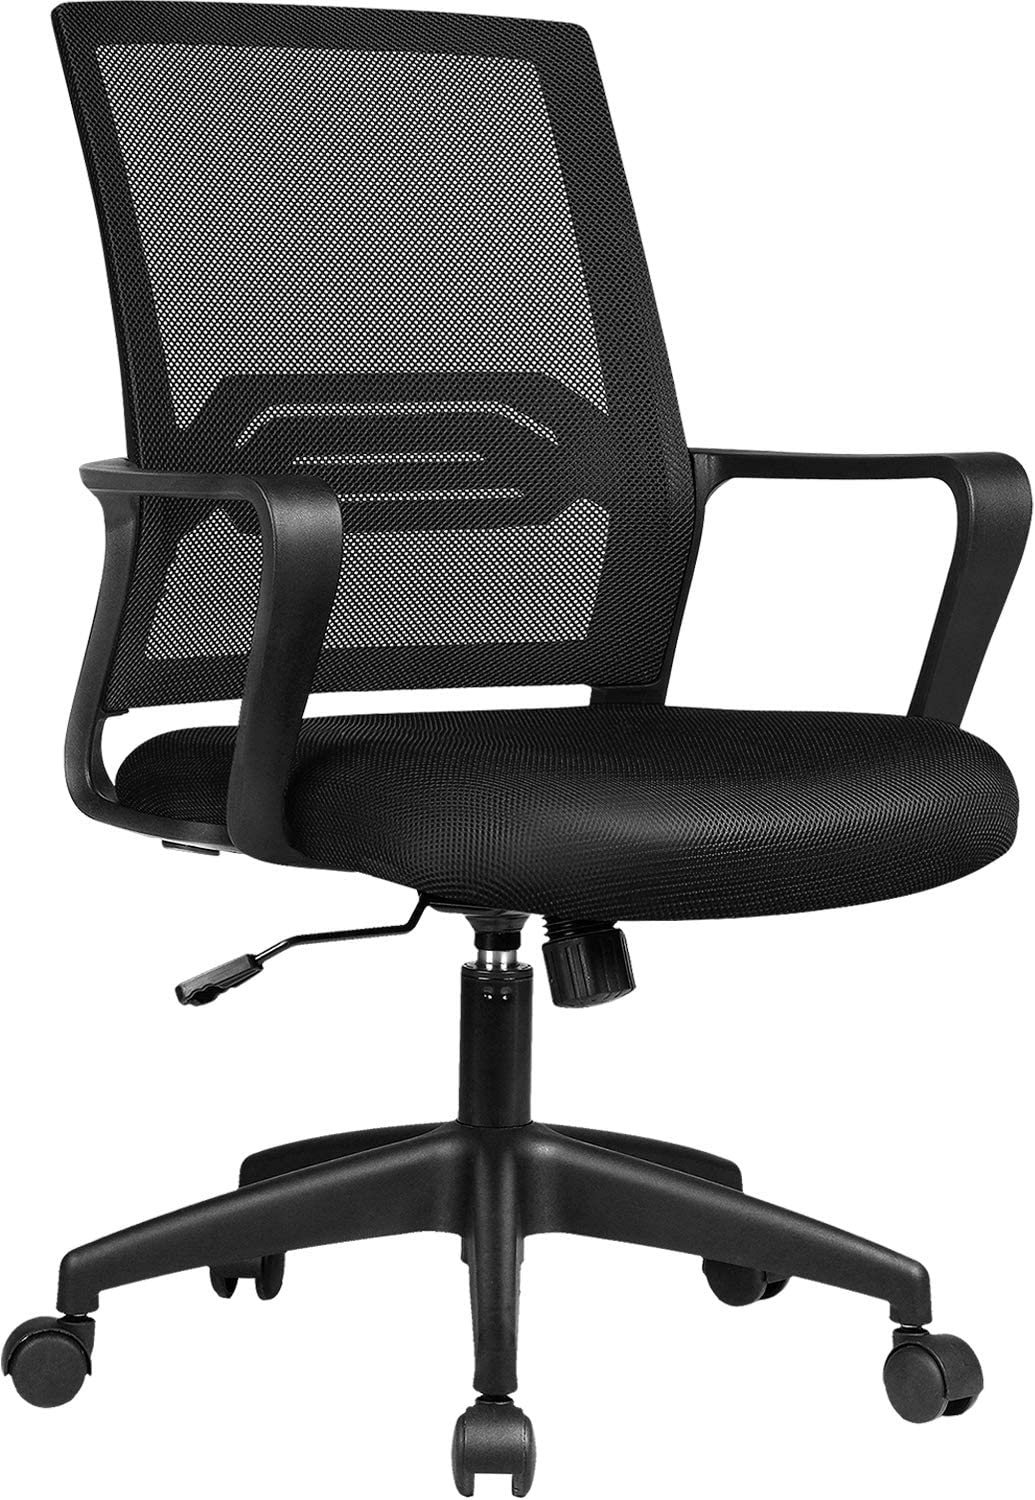 ComHoma Office Chair Ergonomic Desk Chair Mesh Computer Chair Mid Back Mesh Home Office Swivel Chair, Modern Executive Chair with Armrests Lumbar Support(Black),